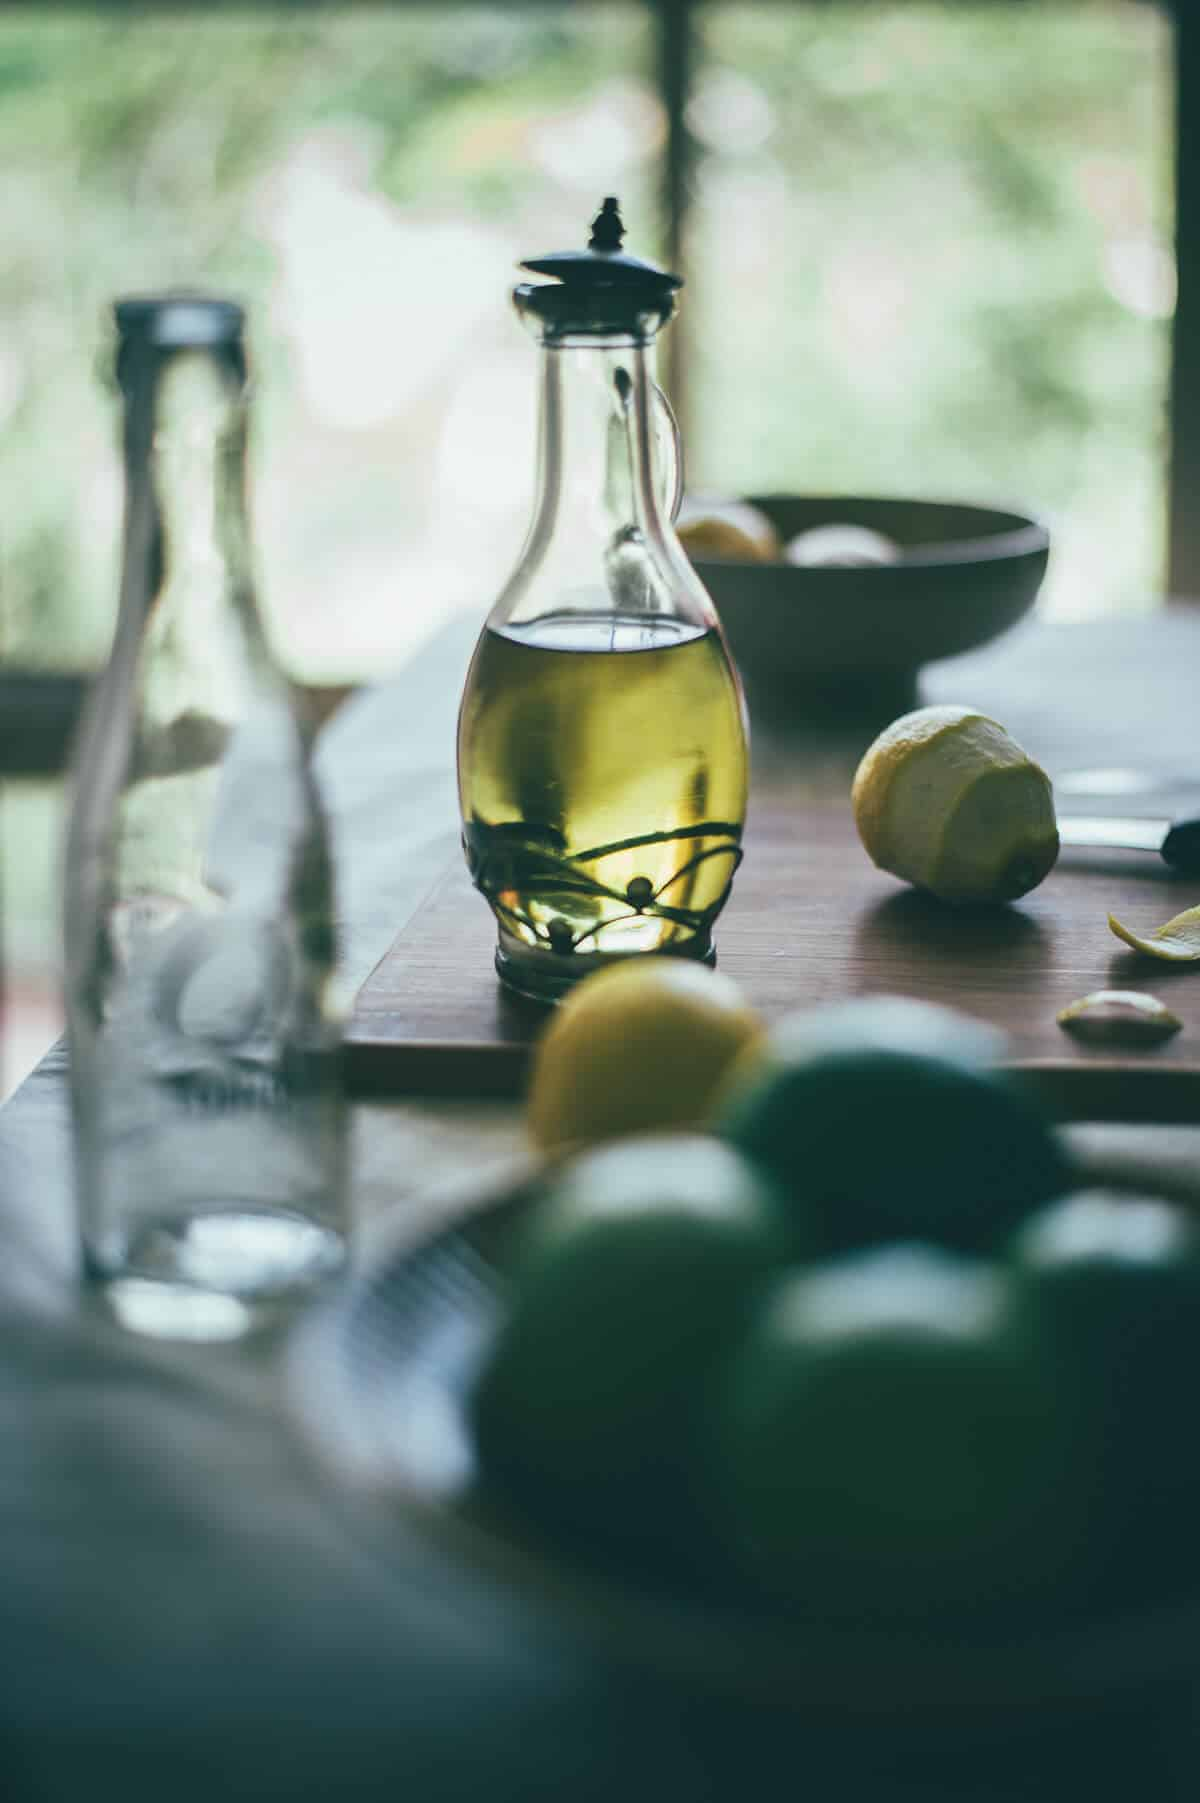 a bottle of olive oil with limes and lemons on a table